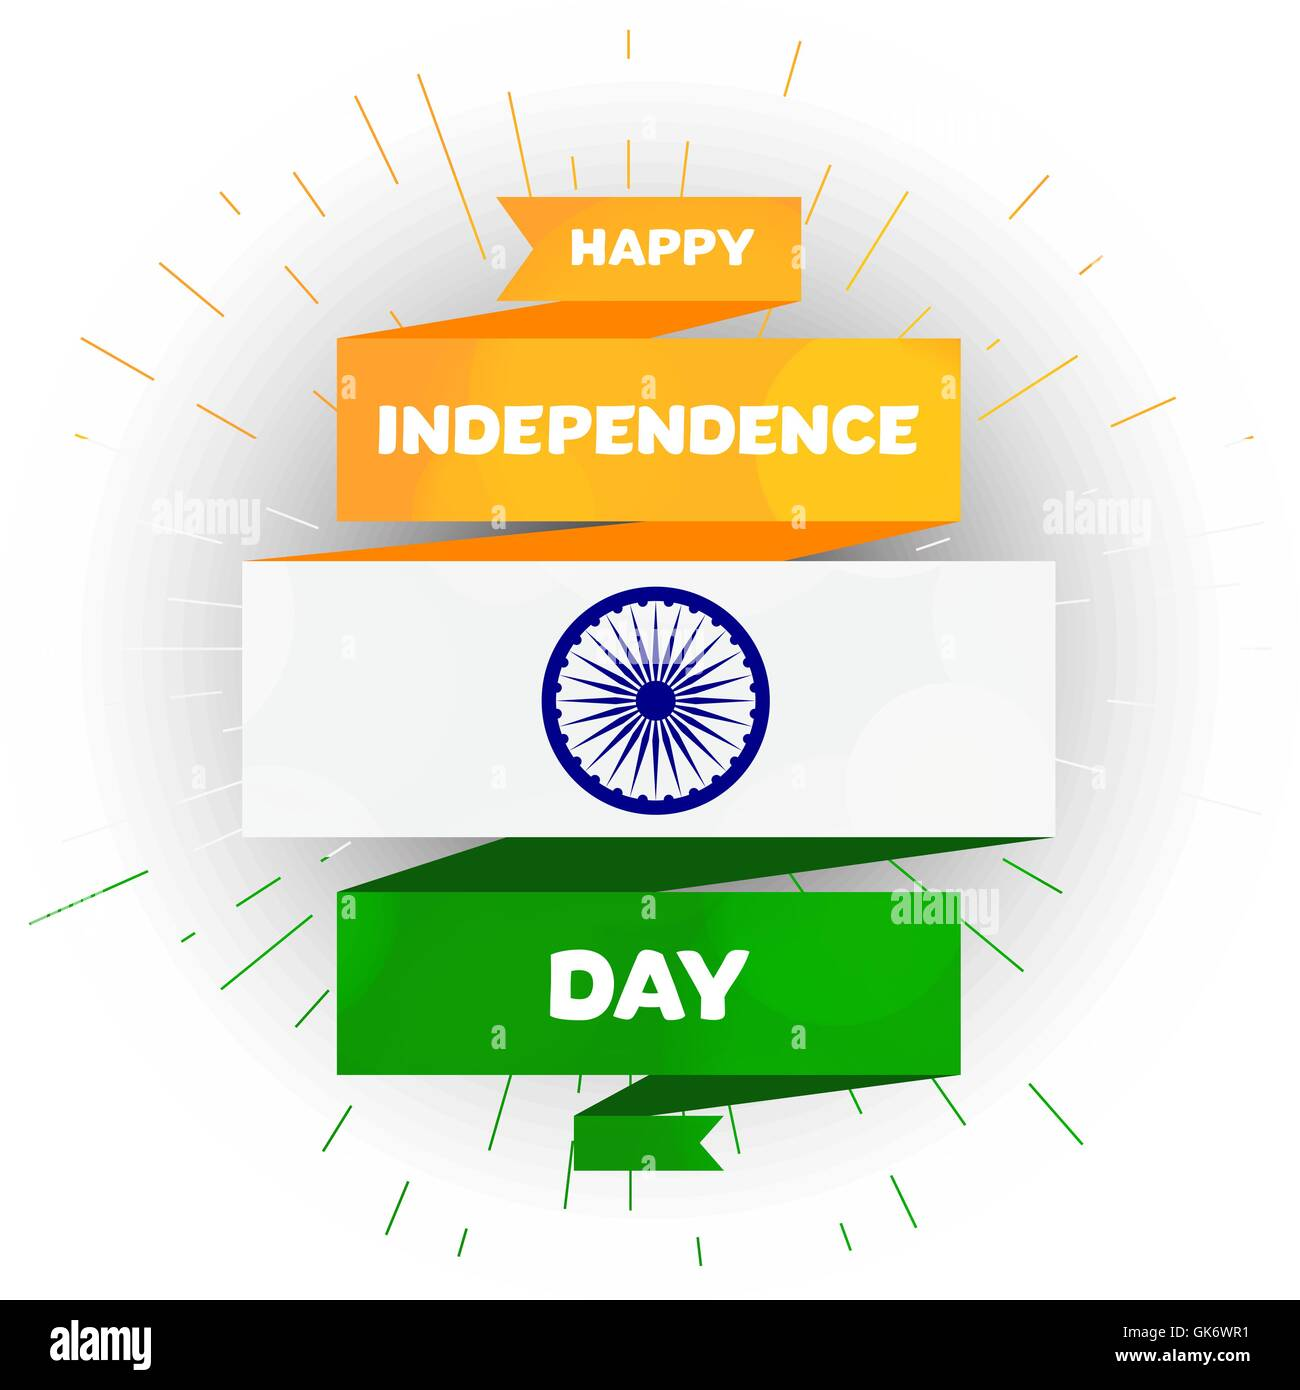 Independence Day India Cut Out Stock Images Pictures Alamy